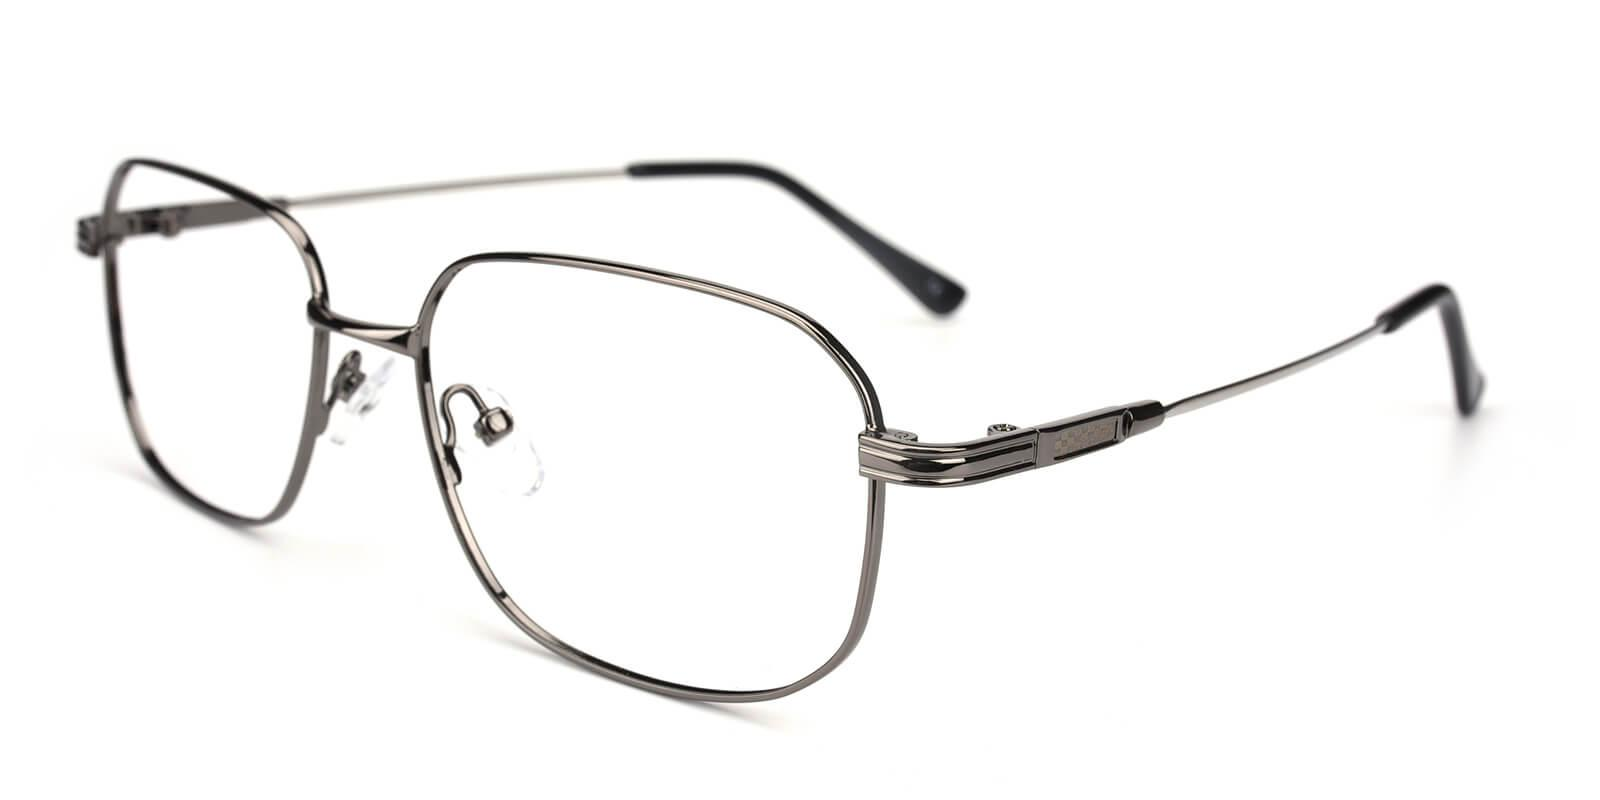 Weston-Gun-Square-Metal-Eyeglasses-additional1